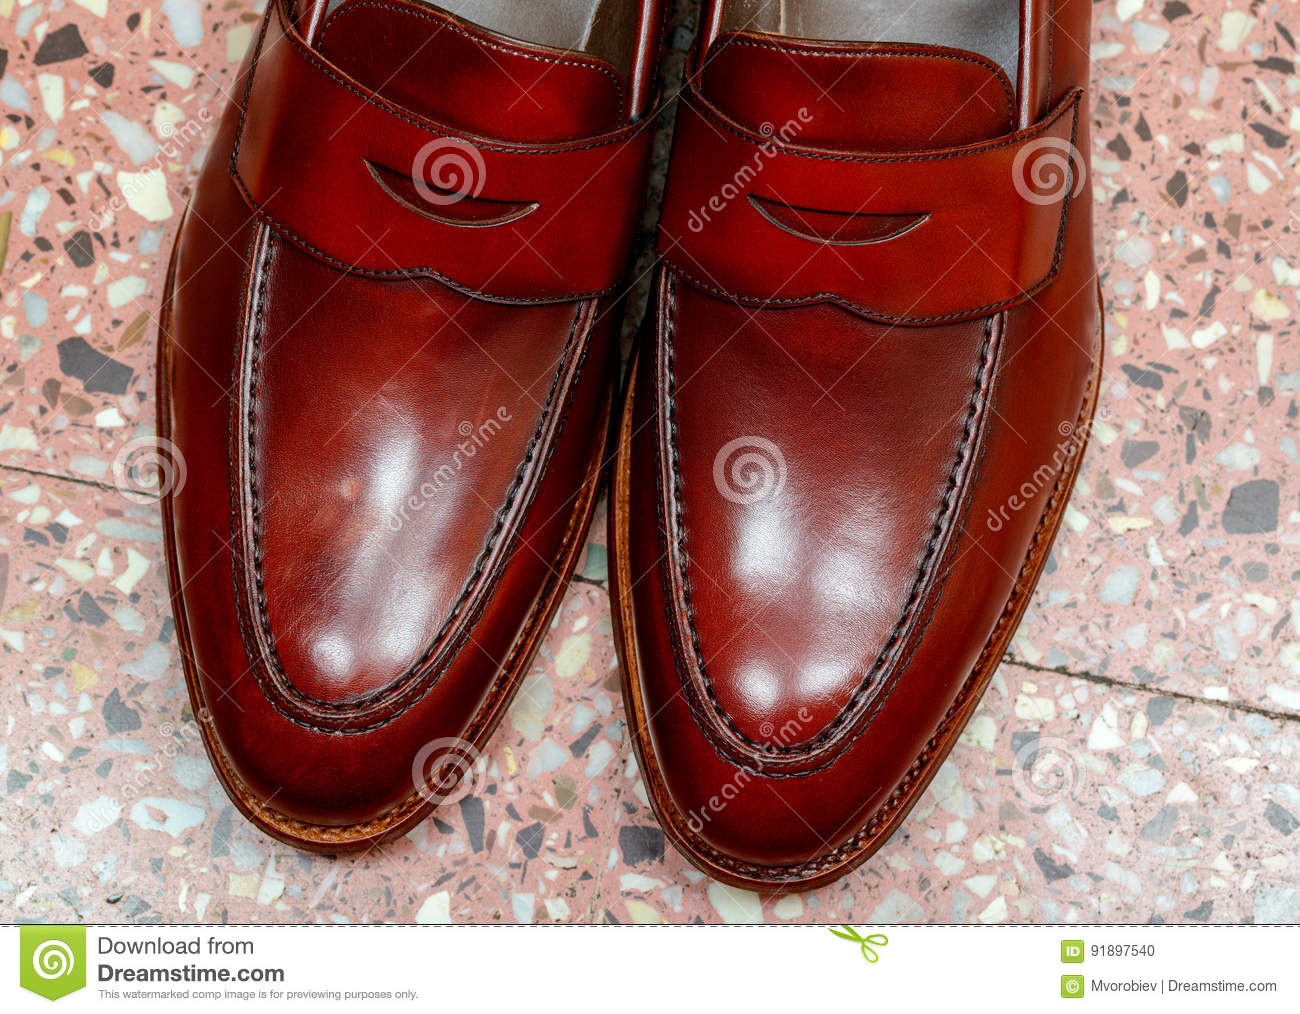 5e3f48abeb1 Pair of leather burgundy penny loafer shoes together on floor background one  by one. Horizontal close-up image